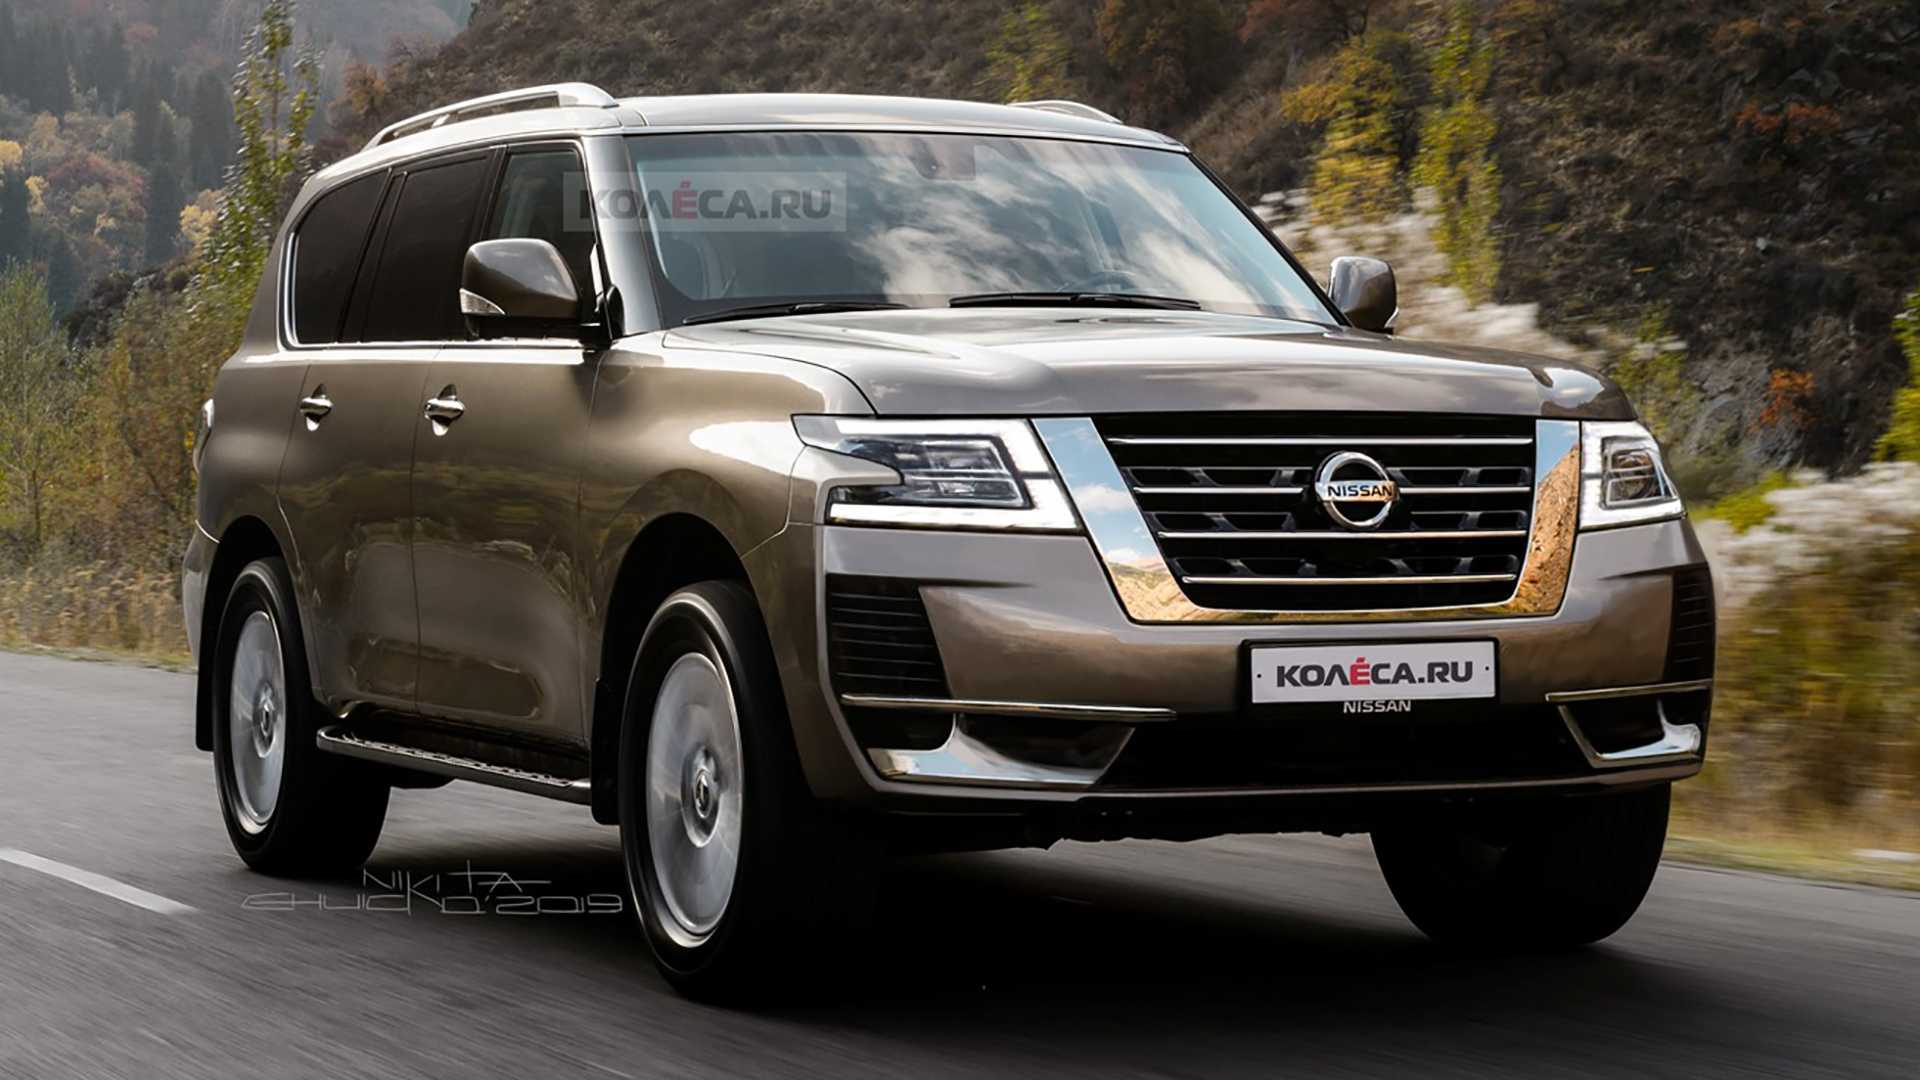 56 The Best Nissan Patrol 2020 Redesign Pictures